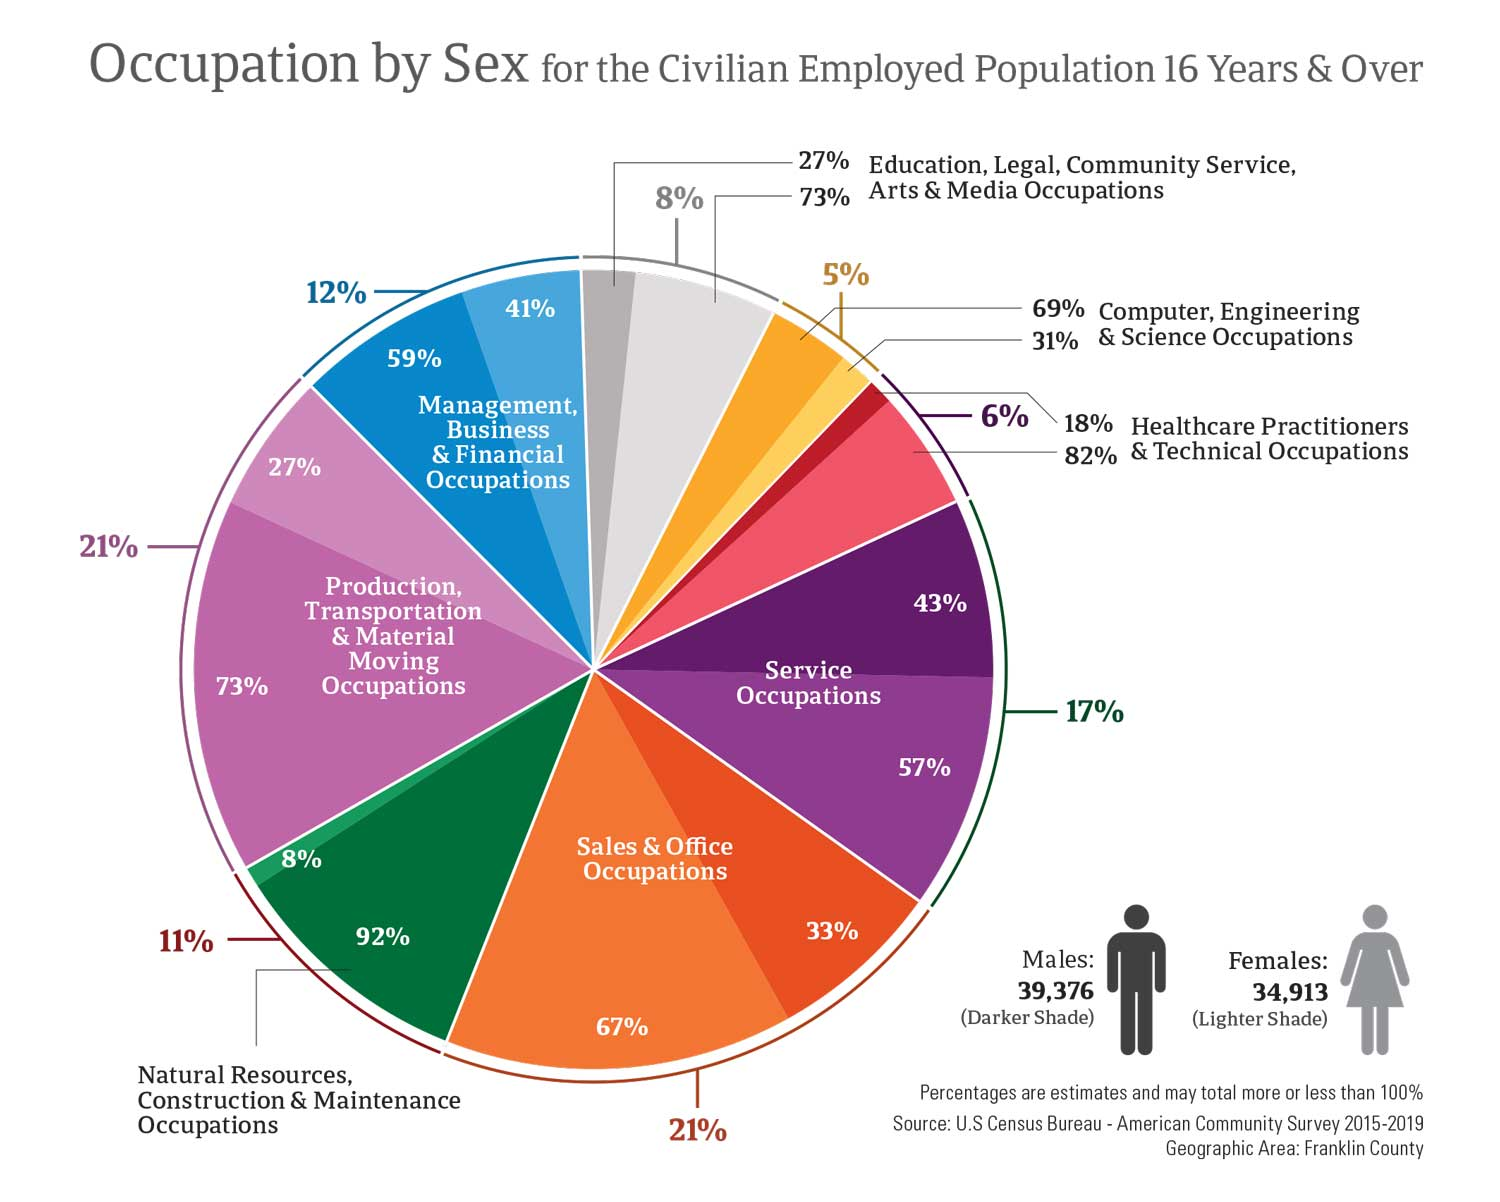 Occupation by Sex for the Civilian Employed Population 16 Years & Over